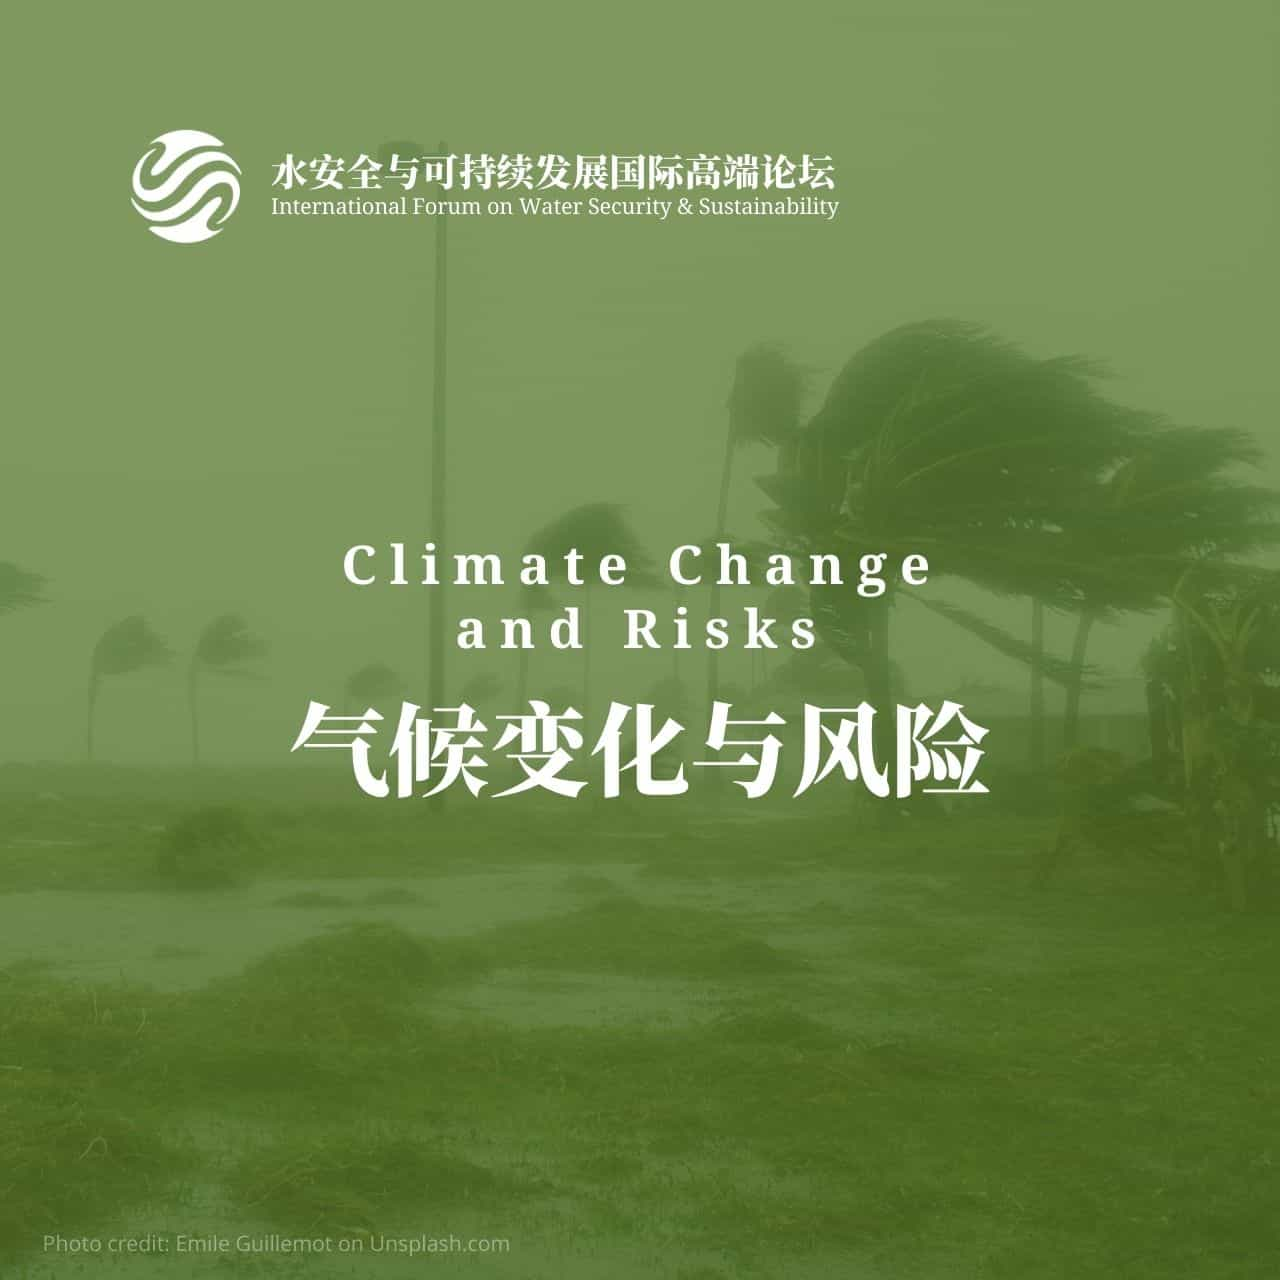 Climate change and risks